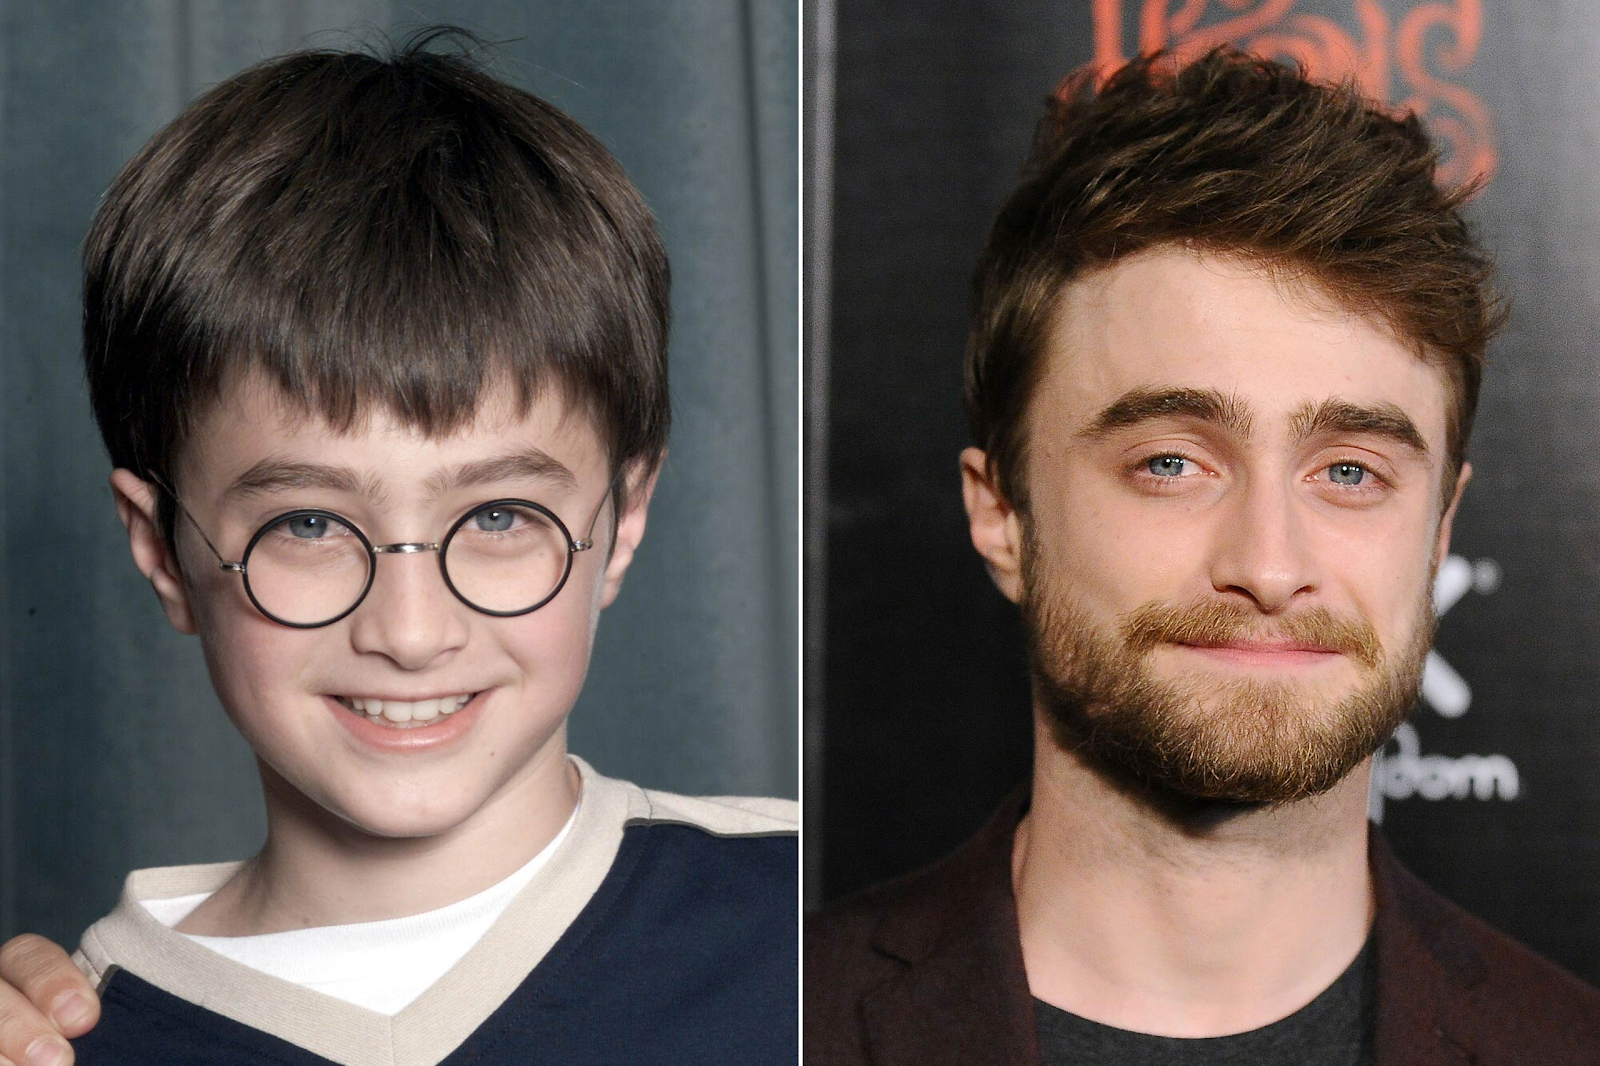 Two photos comparing a young and older Daniel Radcliffe.